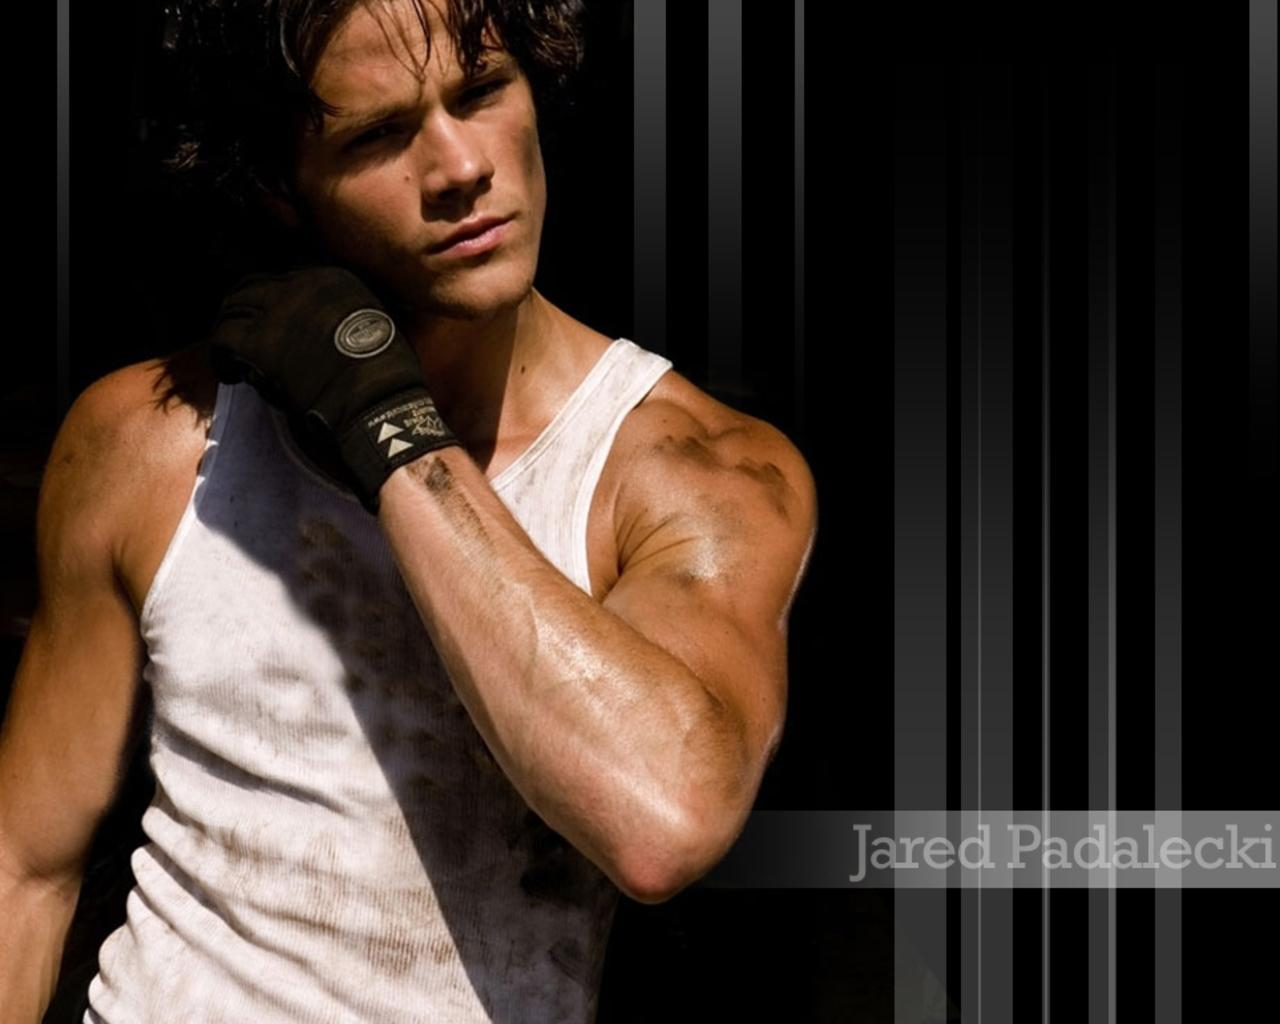 Resultat av Googles bildsökning efter http://images2.fanpop.com/images/photos/6400000/Jared-Padalecki-supernatural-6492906-1280-1024.jpg